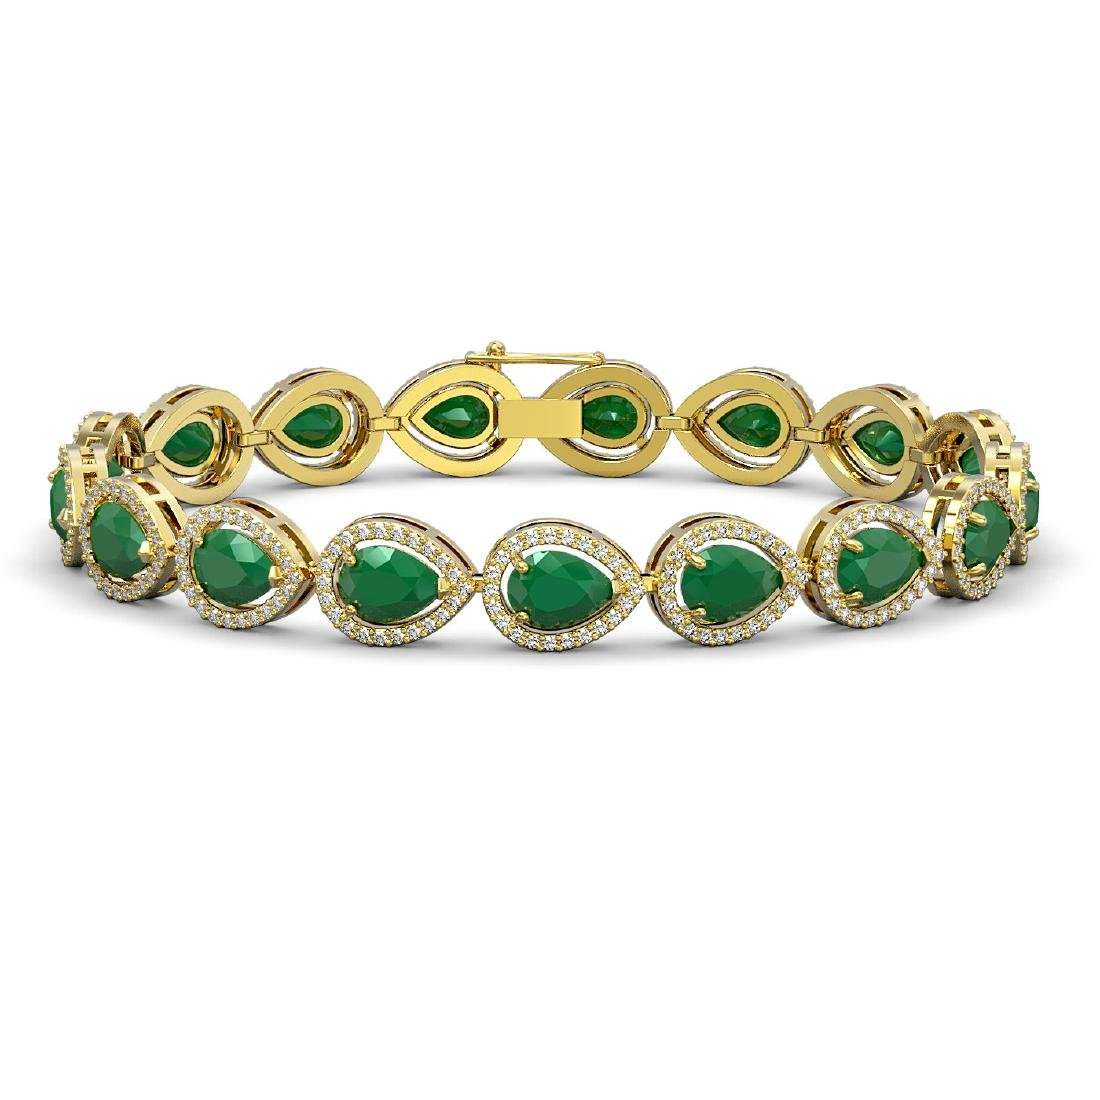 21.69 CTW Emerald & Diamond Halo Bracelet 10K Yellow